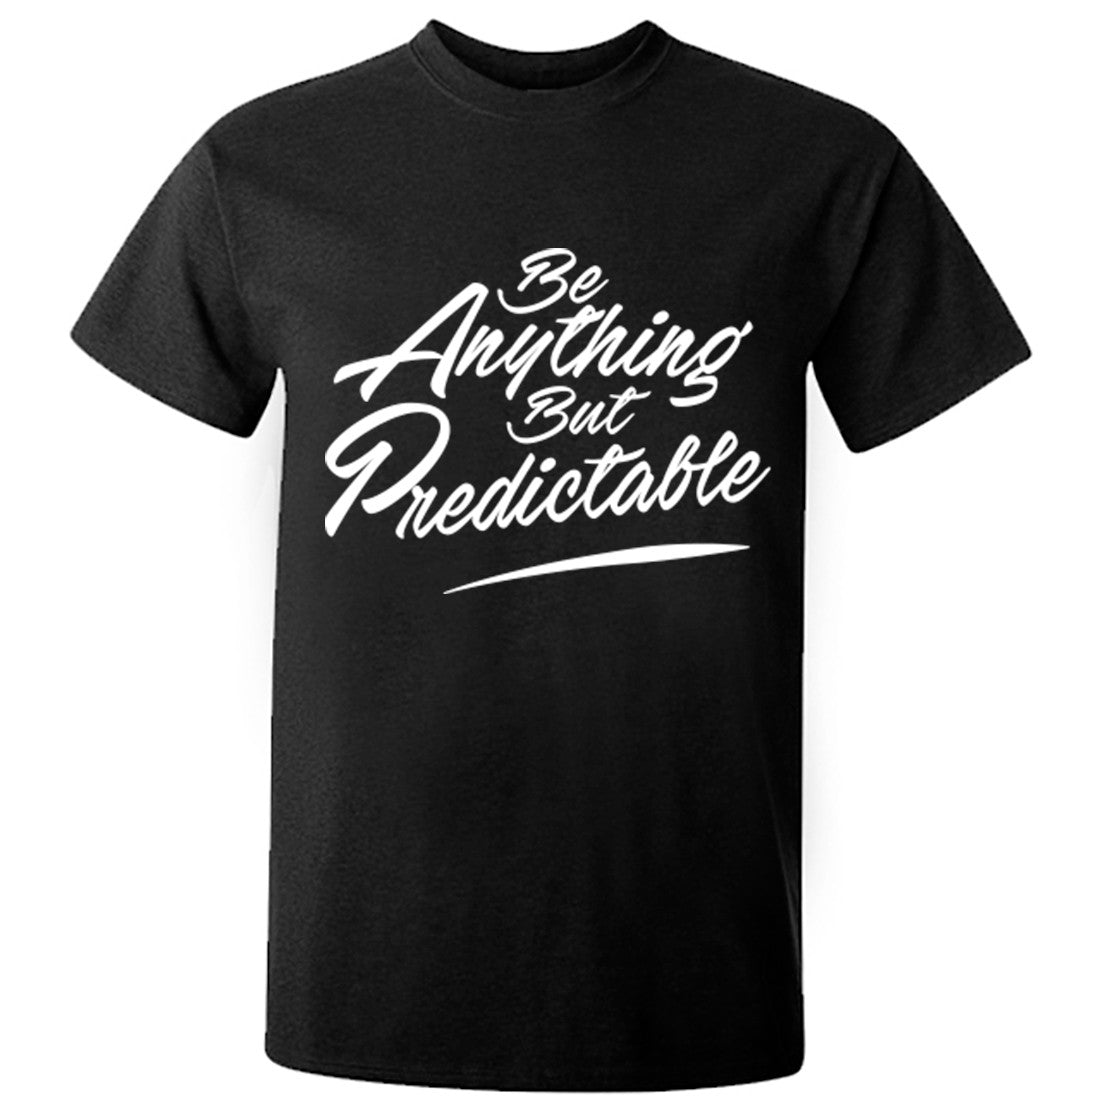 Be Anything But Predictable Unisex Fit T-Shirt K0389 - Illustrated Identity Ltd.